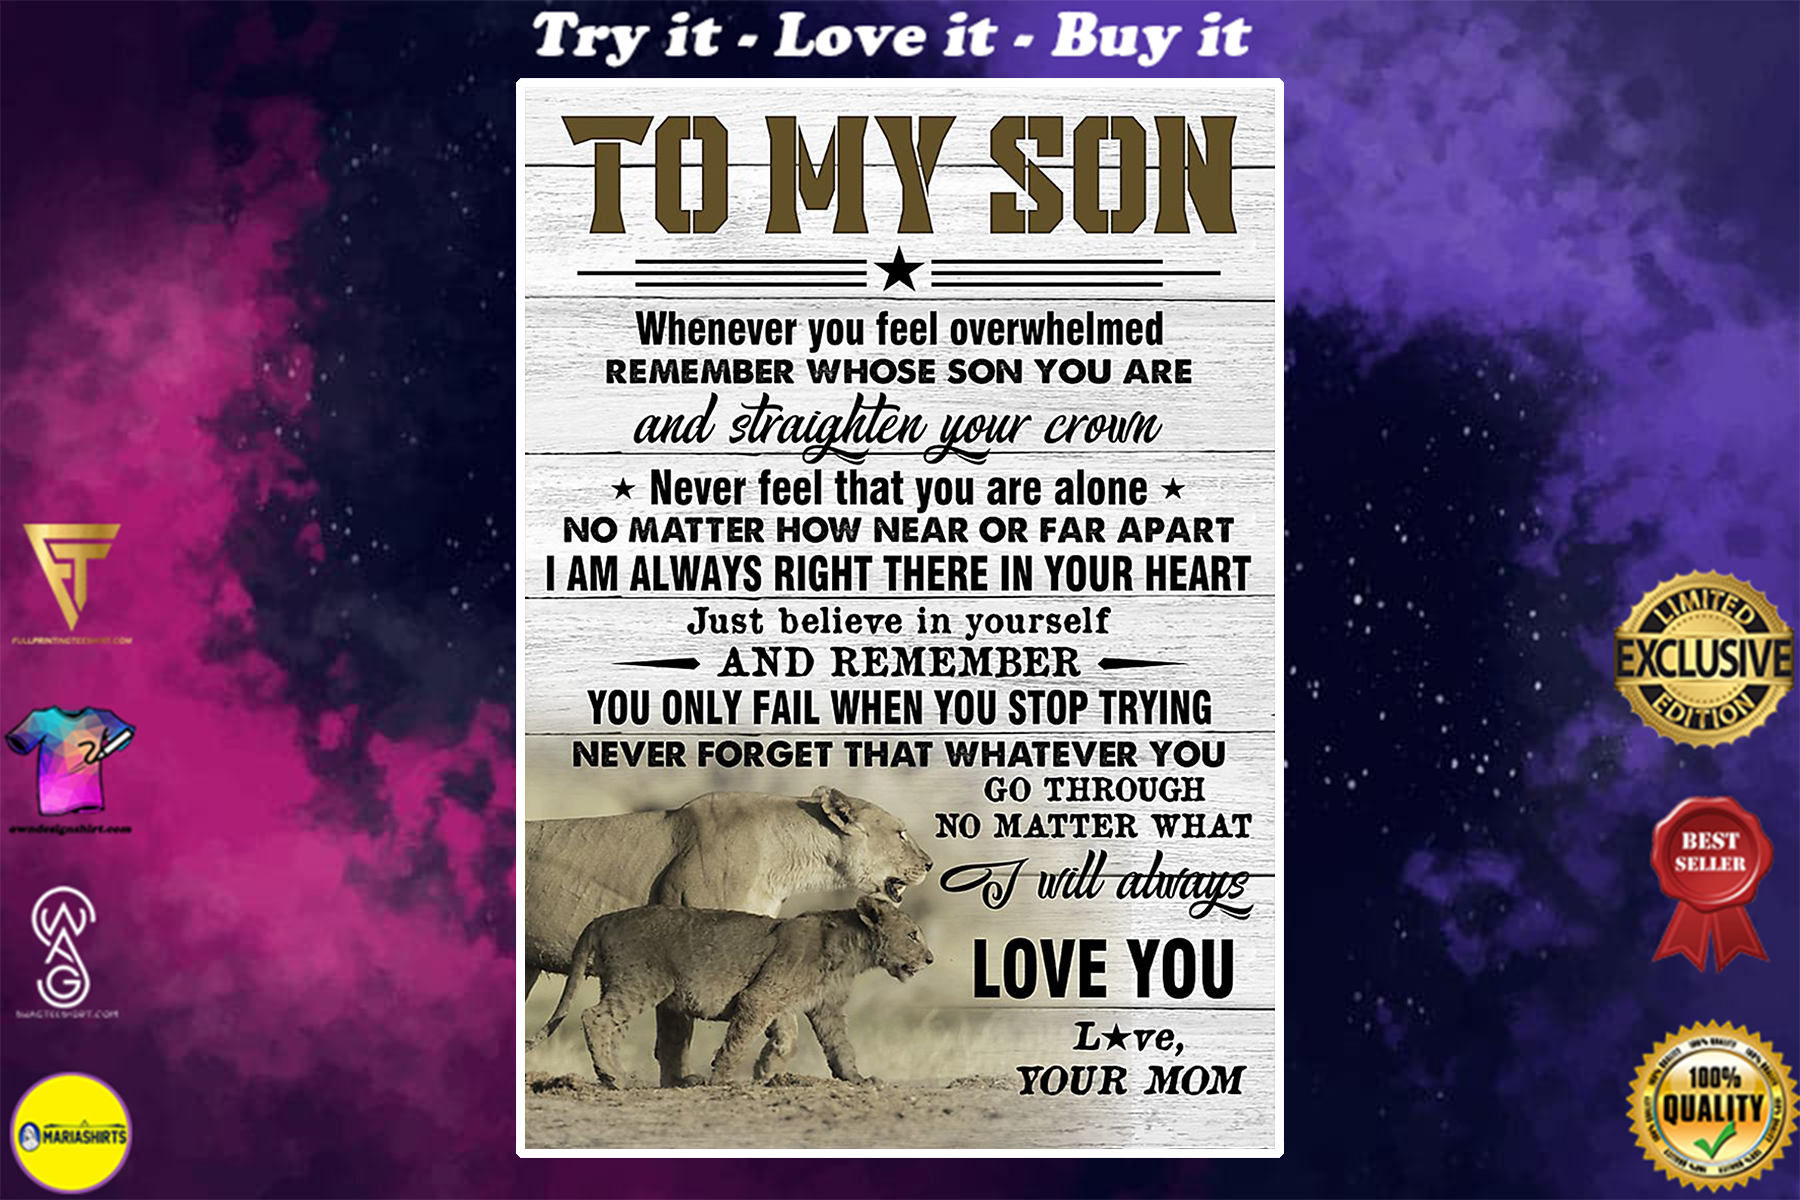 lion to my son just believe in yourself i will always love you your mom poster